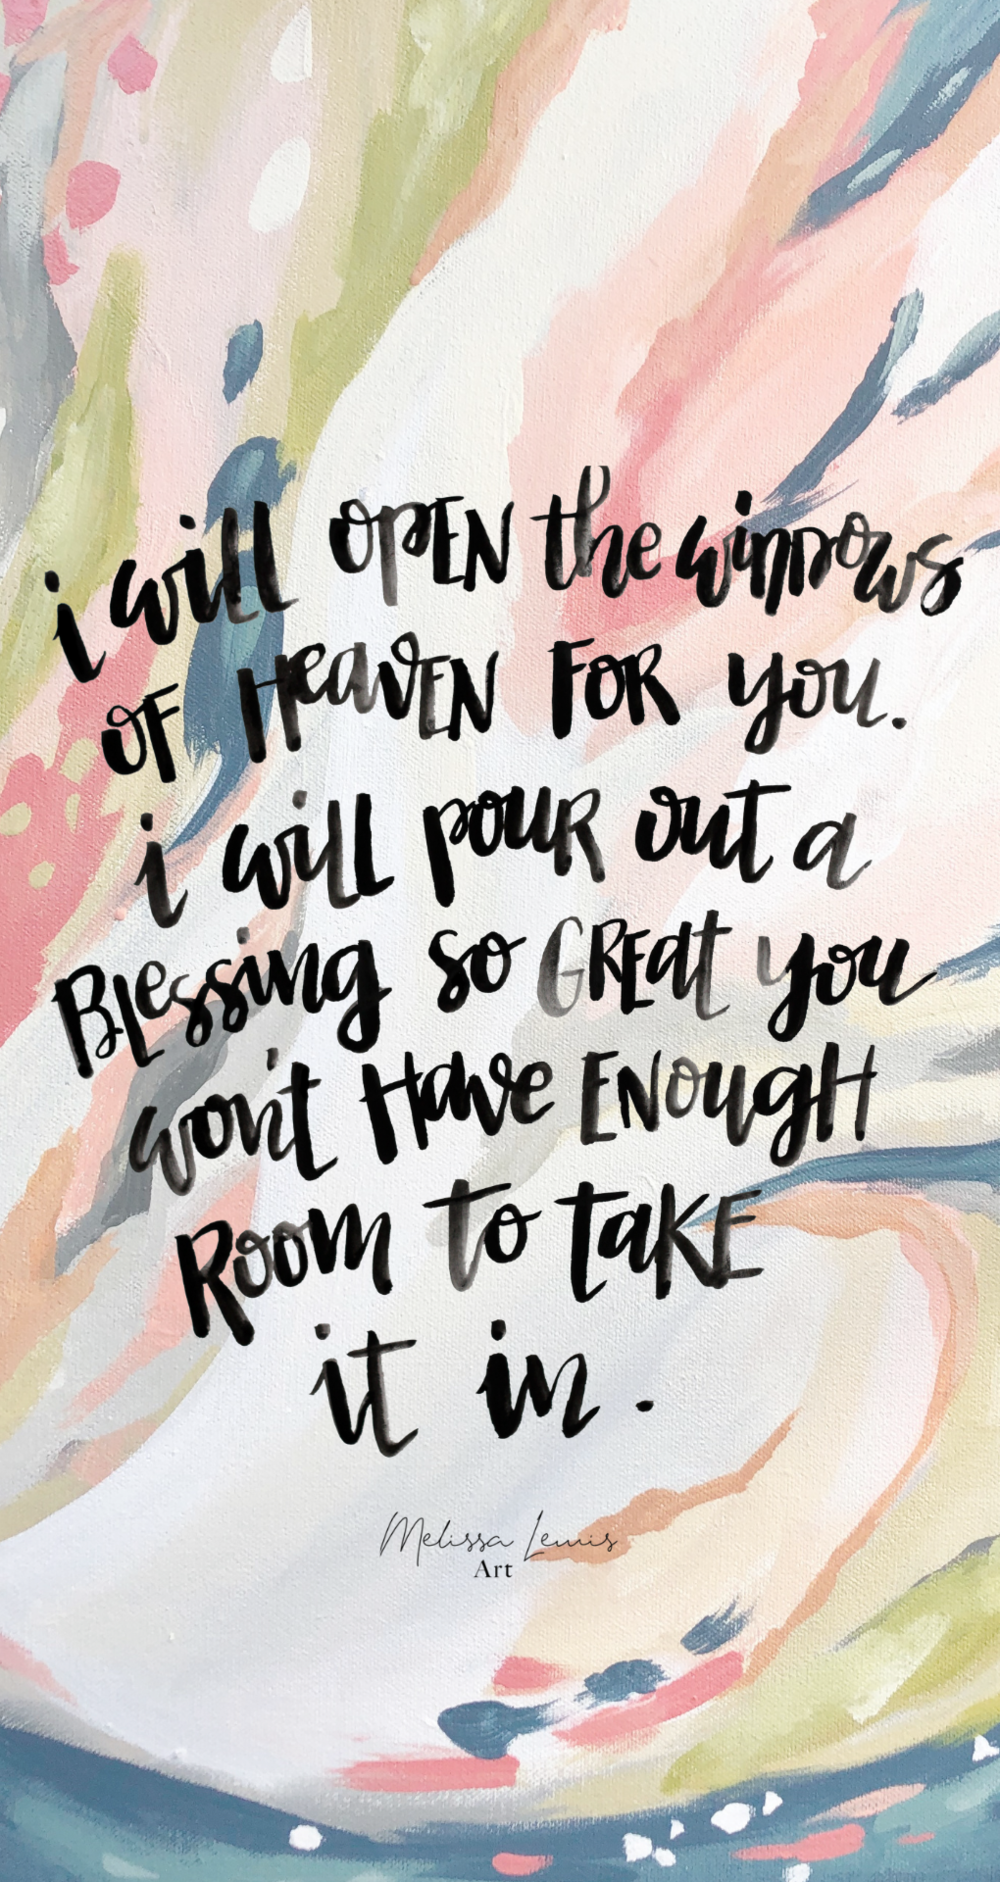 March 2019 iPhone Screensaver Scripture and Art by Melissa Lewis